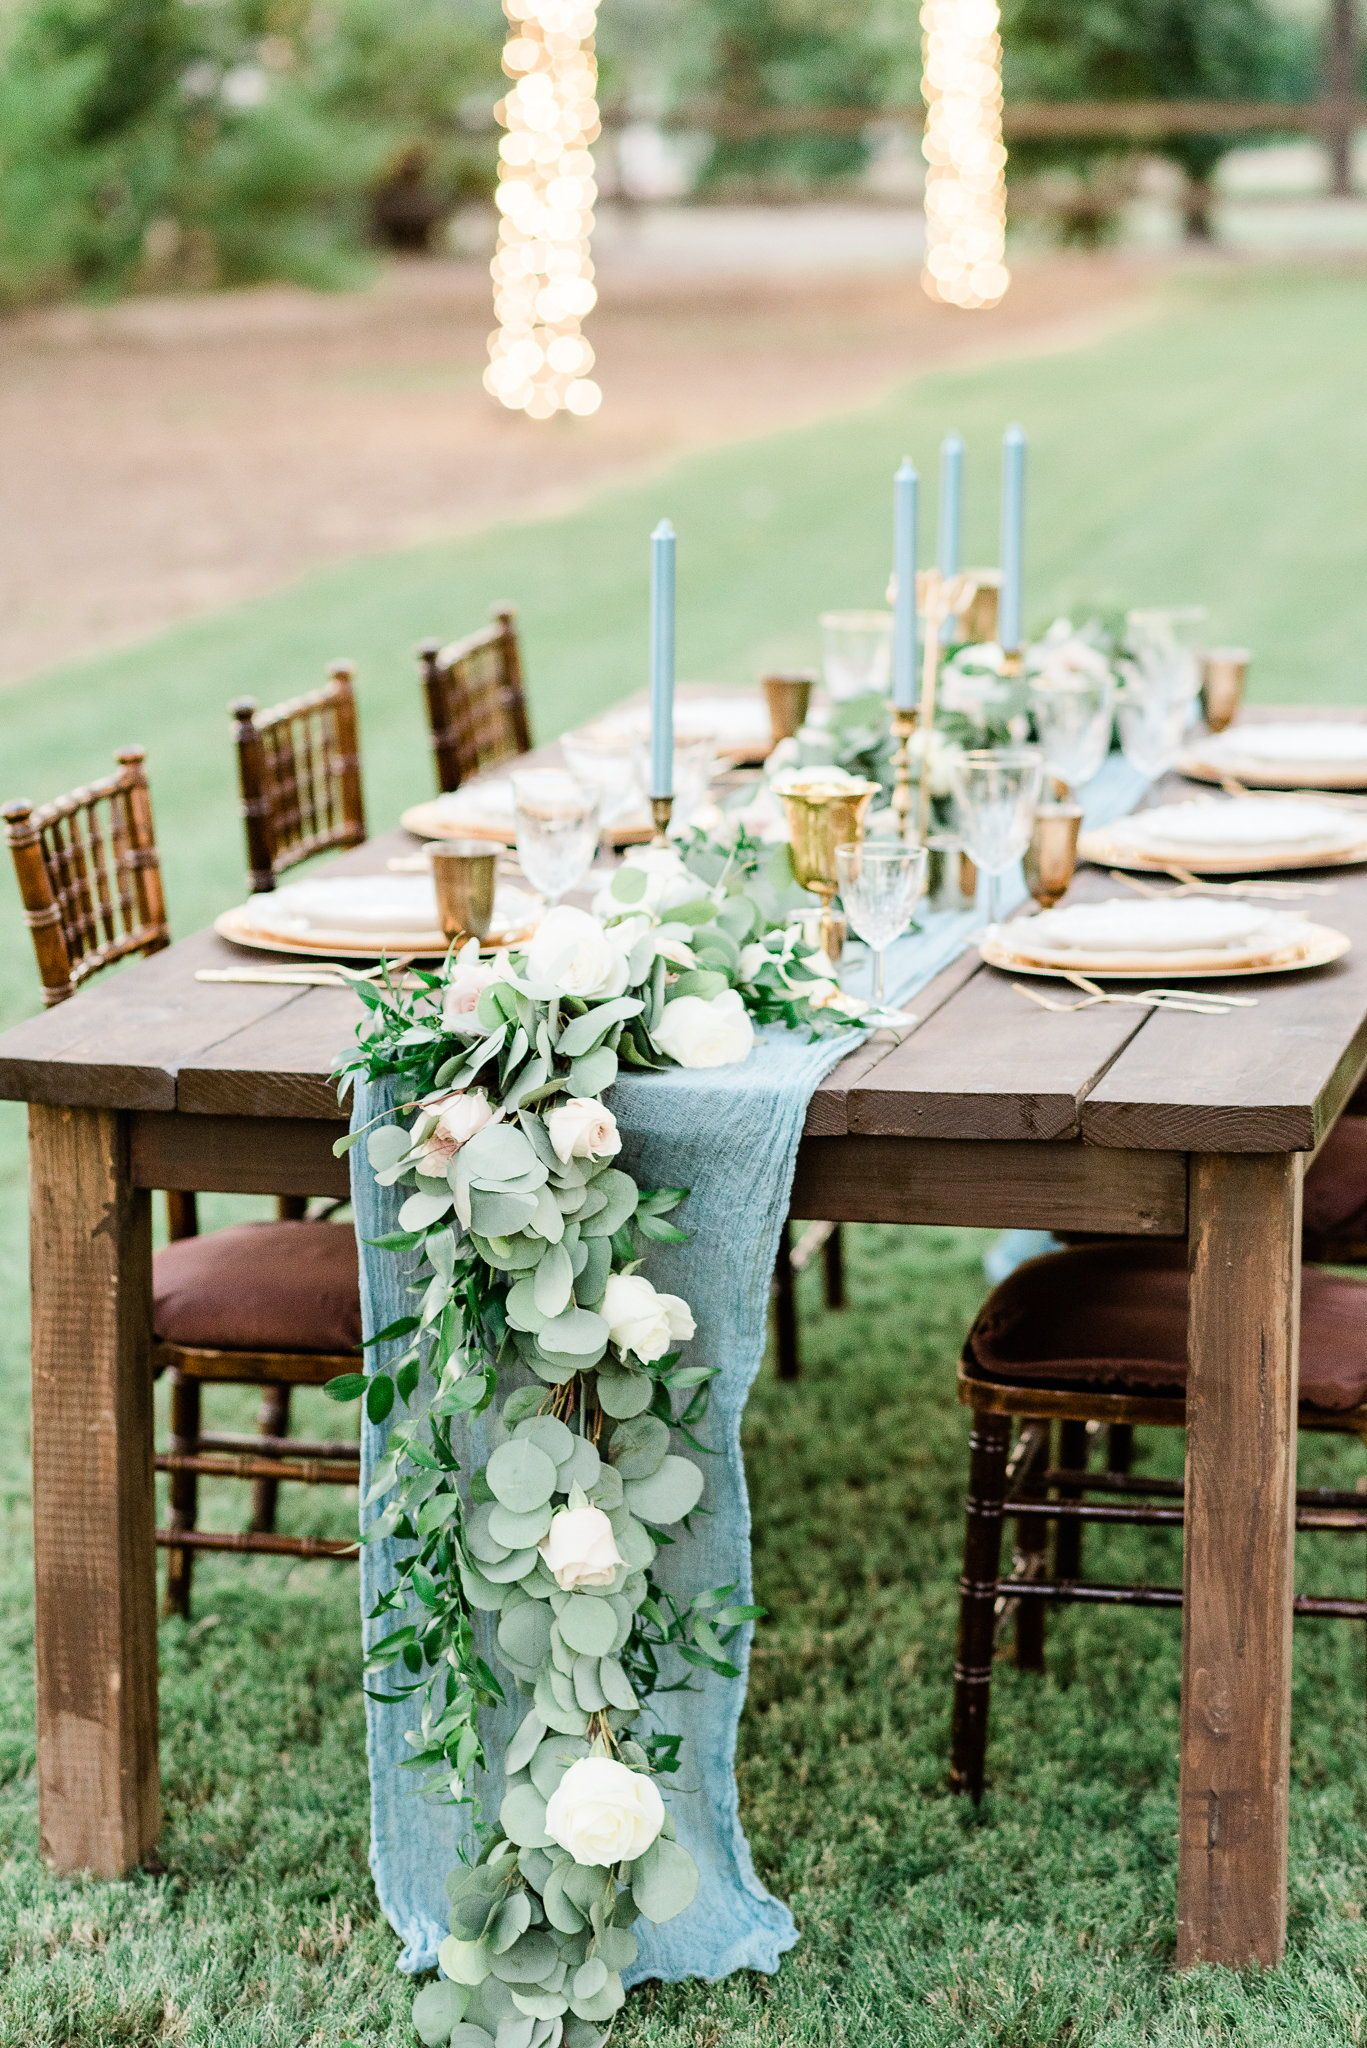 French Themed Table Setting For A Wedding Features A Floral